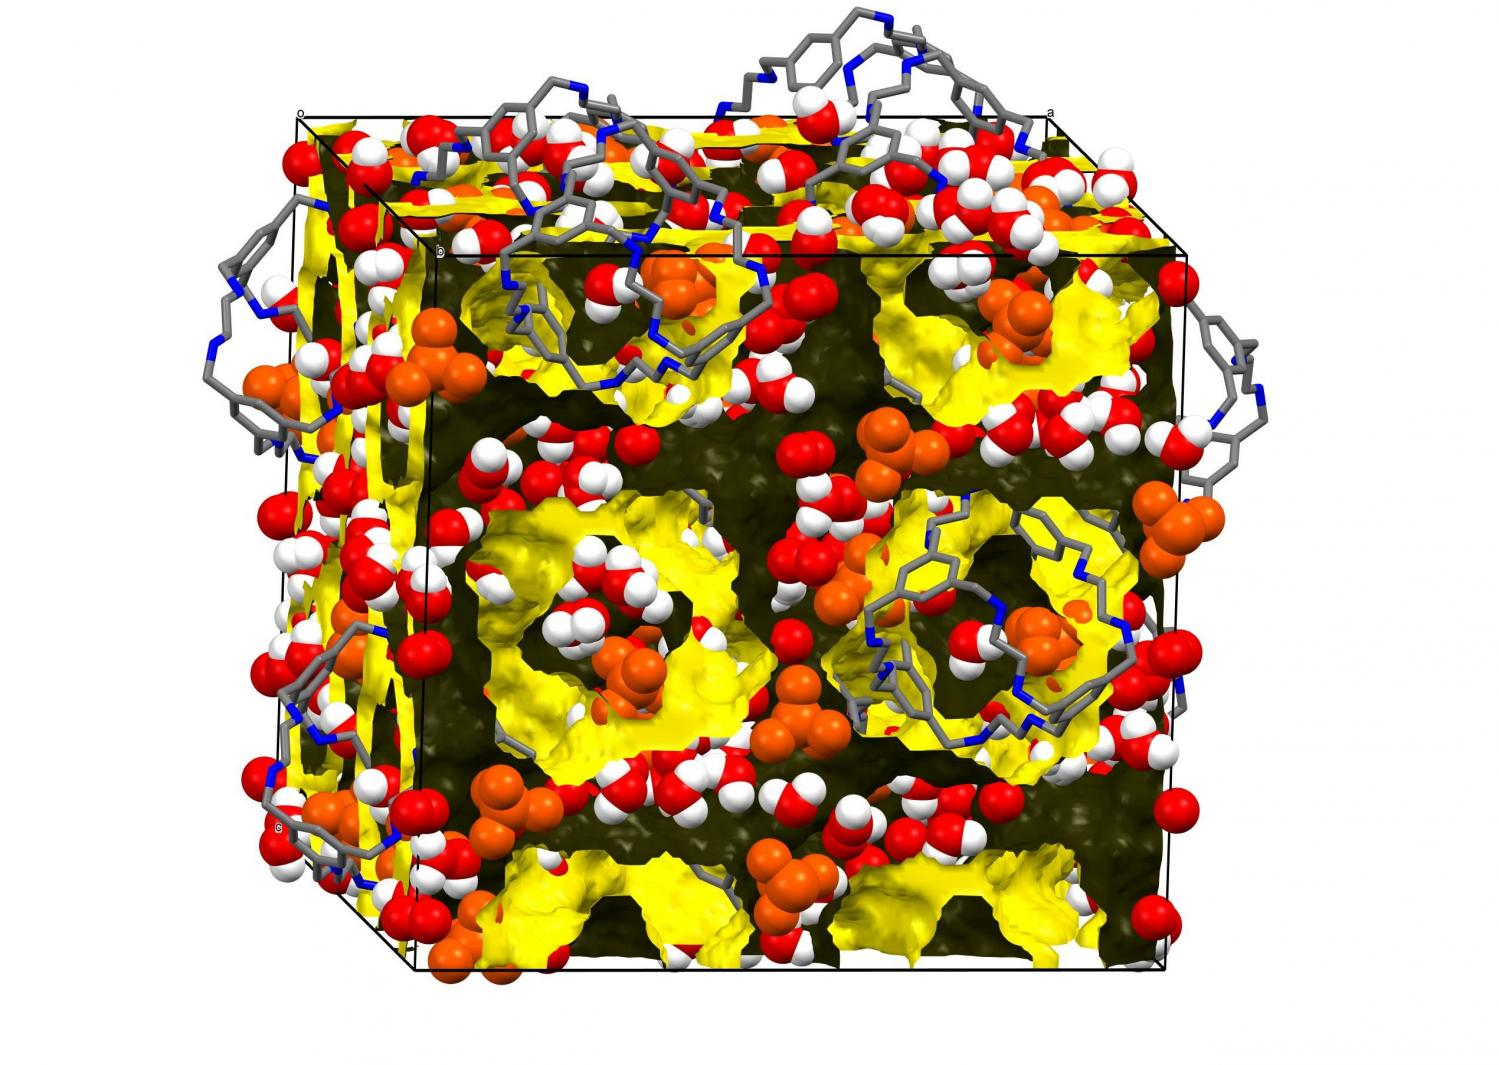 Proton Diffusion Discovery A Boost For Fuel Cell Technologies